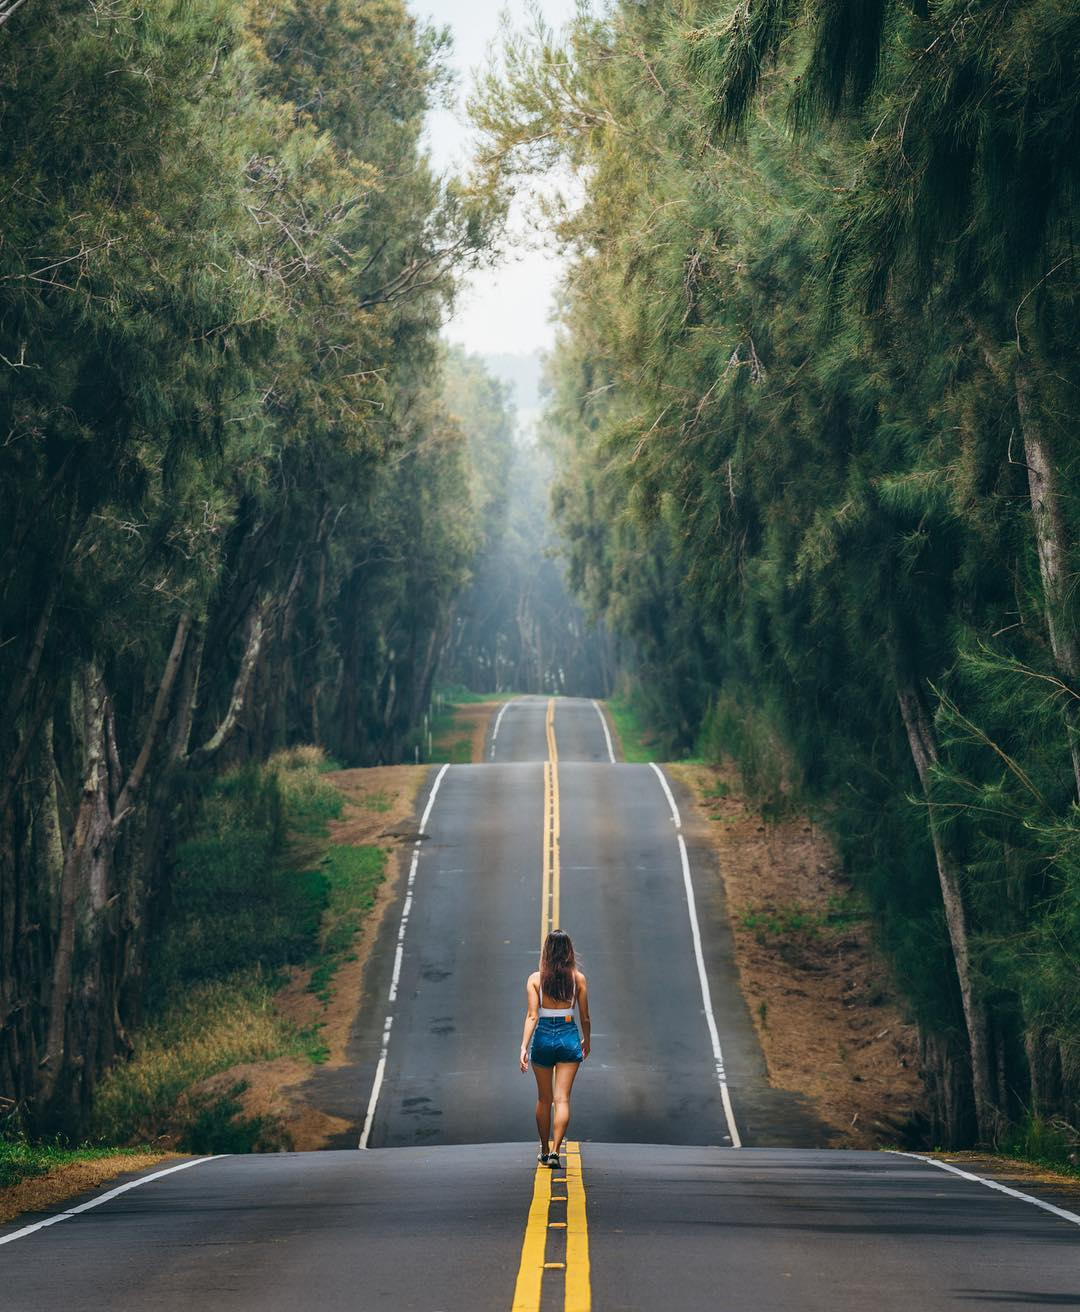 hawaii_on_the_pictures_of_vincent_lim_002631_019